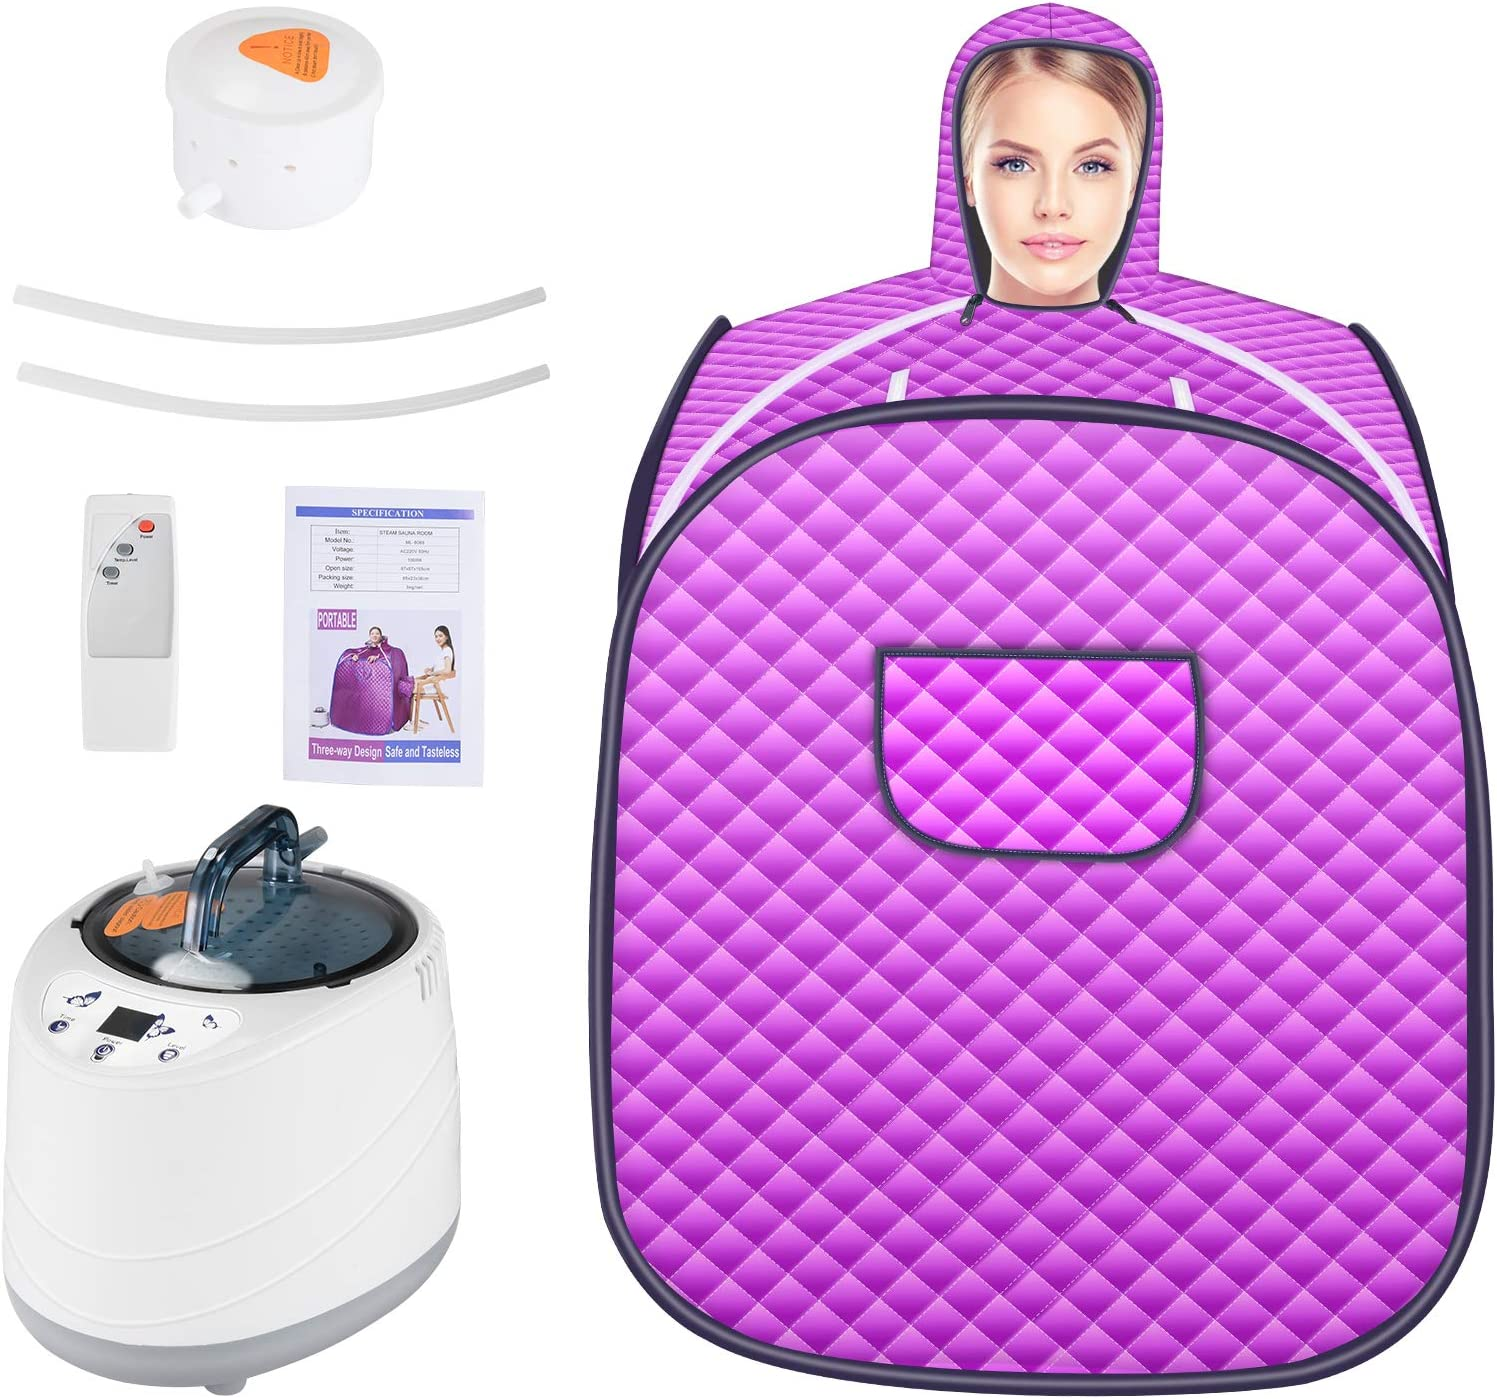 TOPQSC Portable Personal Sauna Tent Full Body Spa,Steam Sauna, Sauna Spa Machine with Remote Control 2L Steamer for Weight Loss Detox Relaxation Slimming,Steam at Home Sauna.